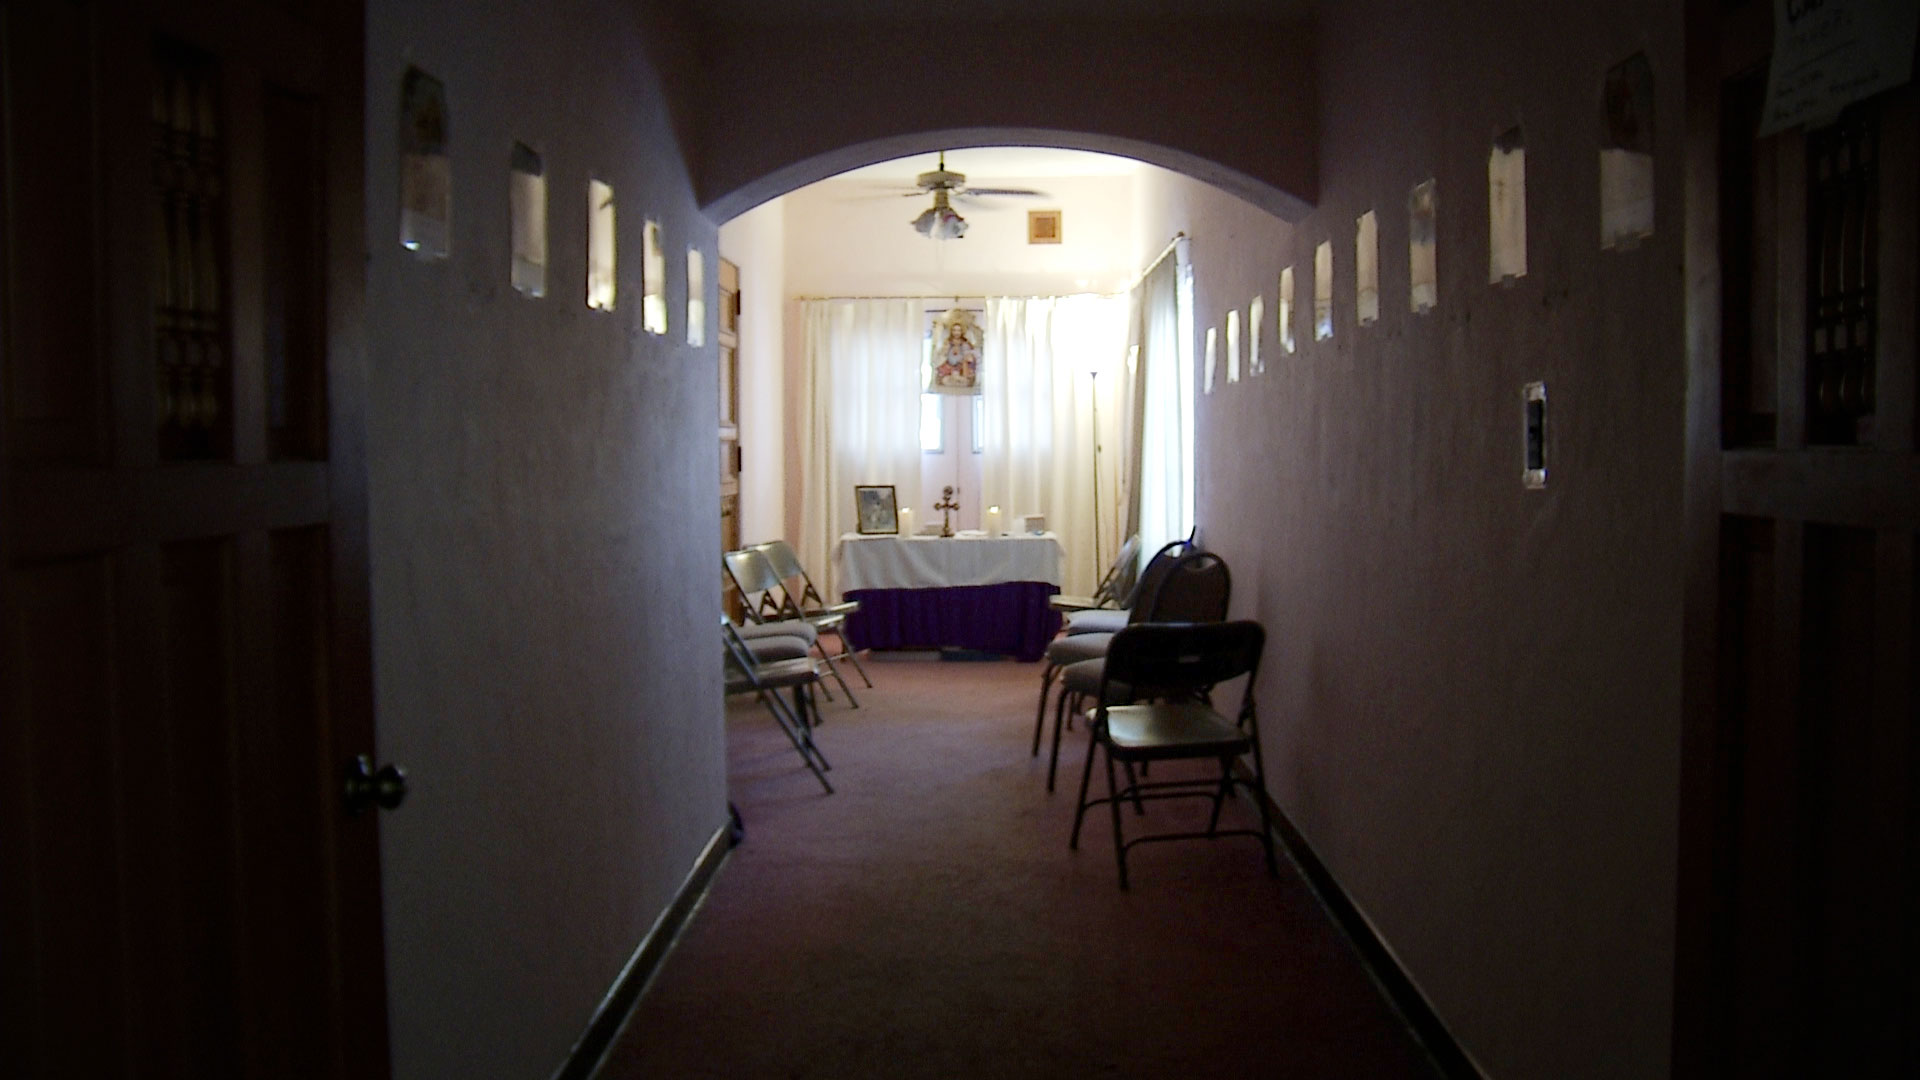 An altar at the end of a hallway inside the Benedictine Monastery in Tucson.